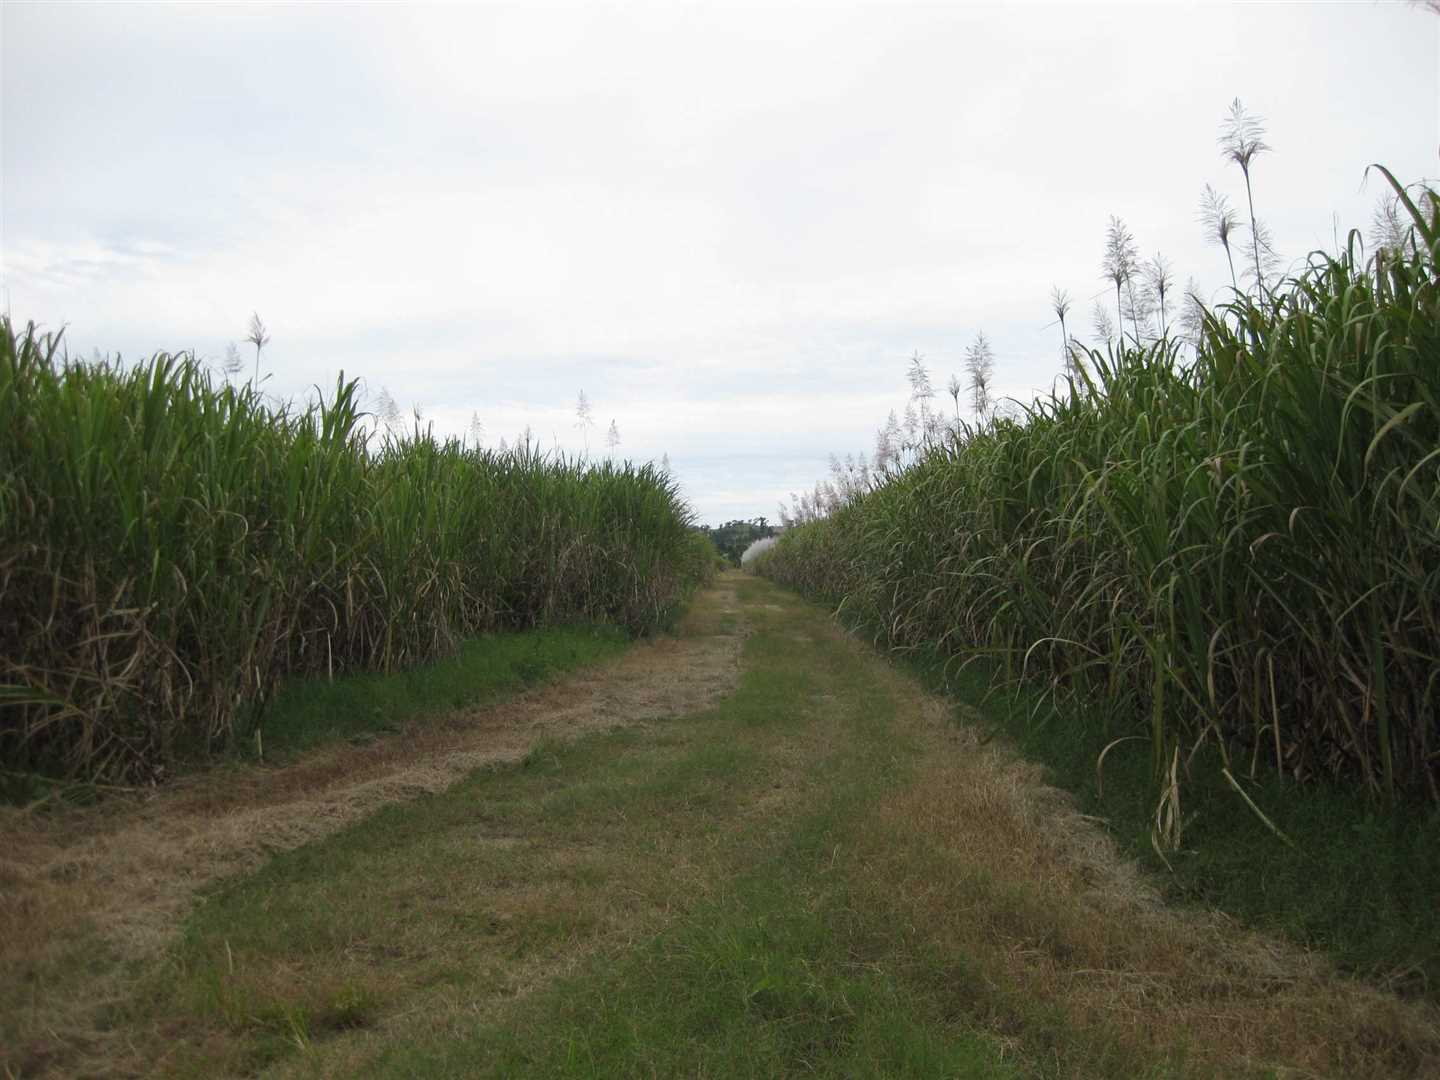 View of part of property, photo 4 (cane crop excluded)